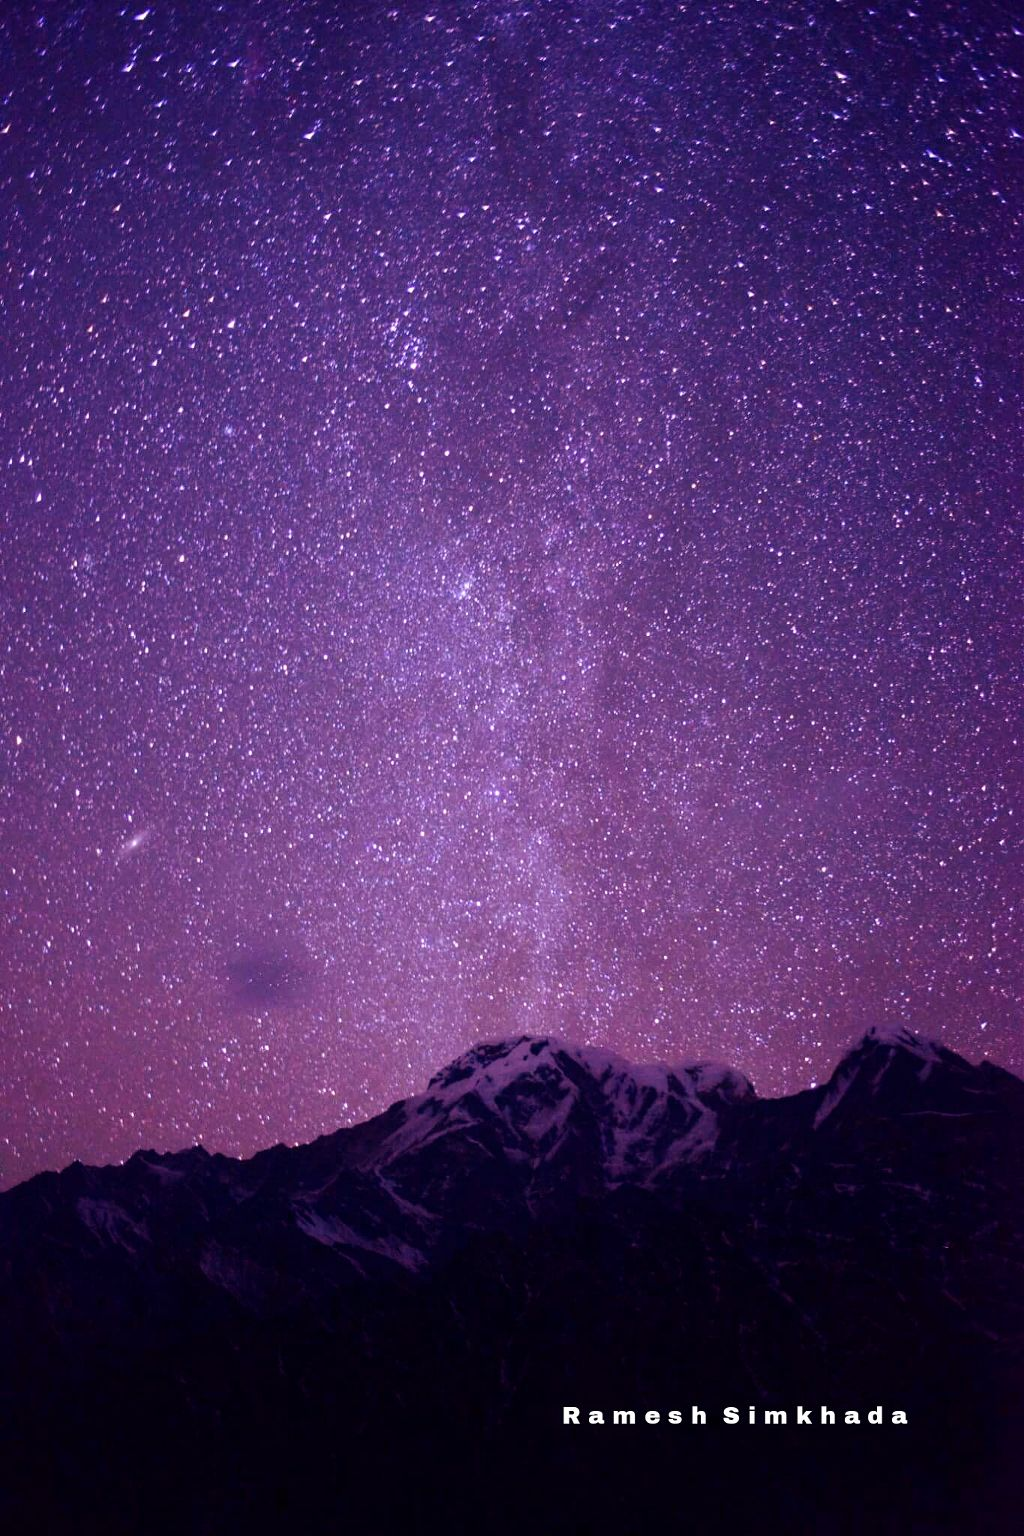 milkyway seen just over the annapurna south during the Mardihimal Trek.  #nepal #mountain #trek